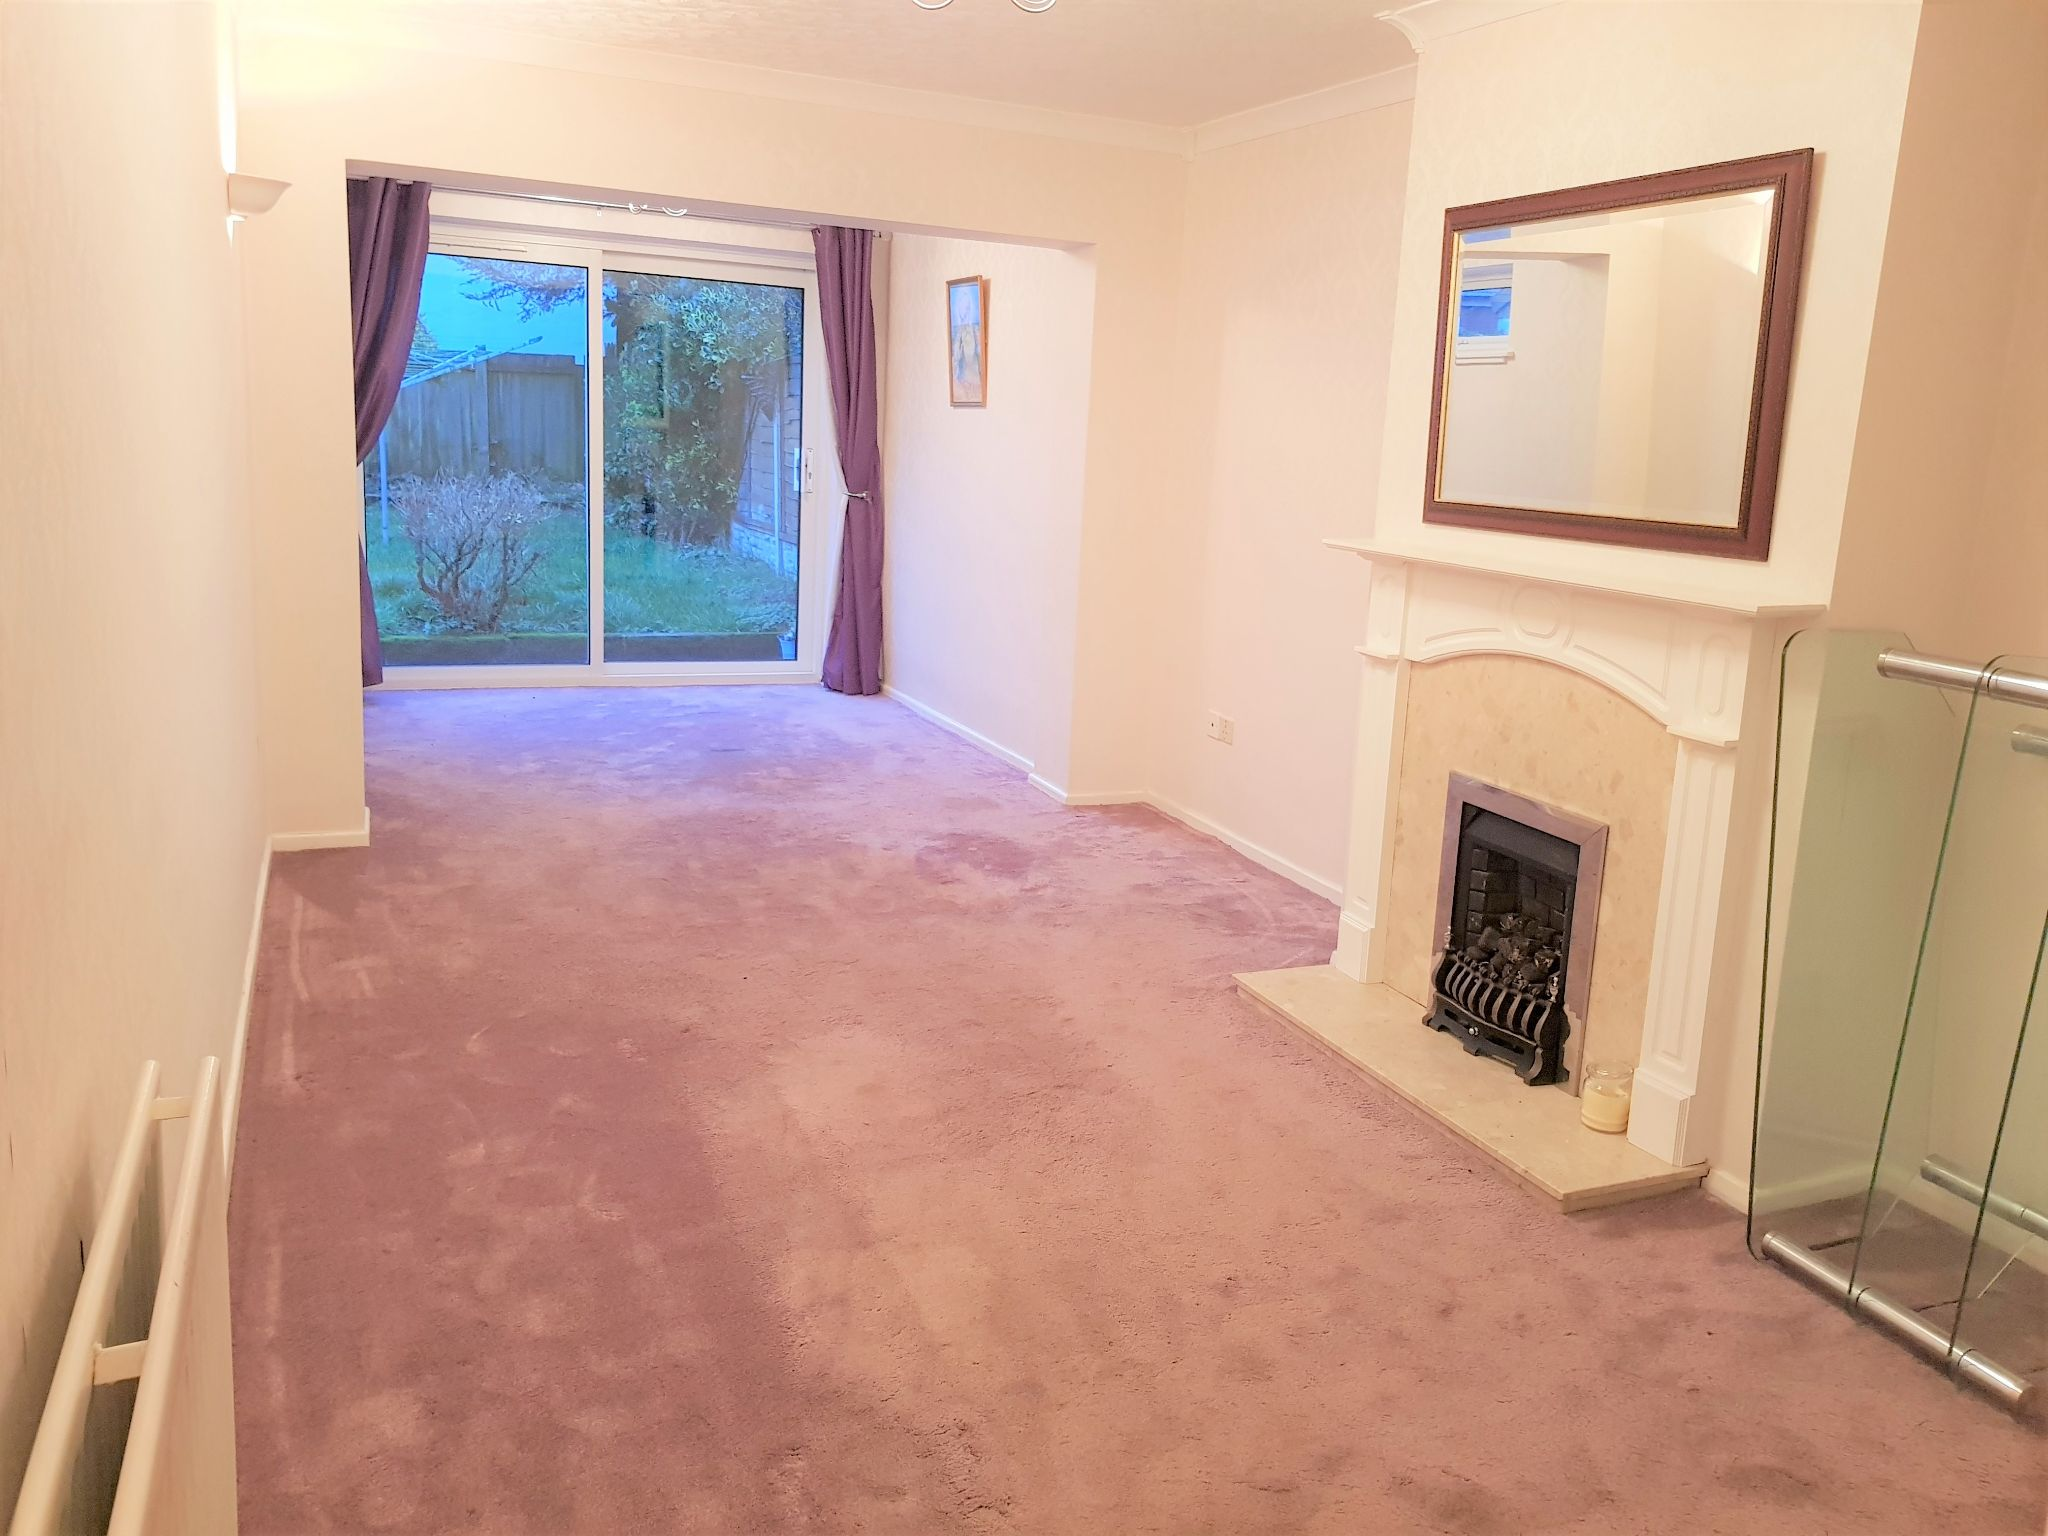 3 Bedroom Semi-detached House To Rent - Reception Room